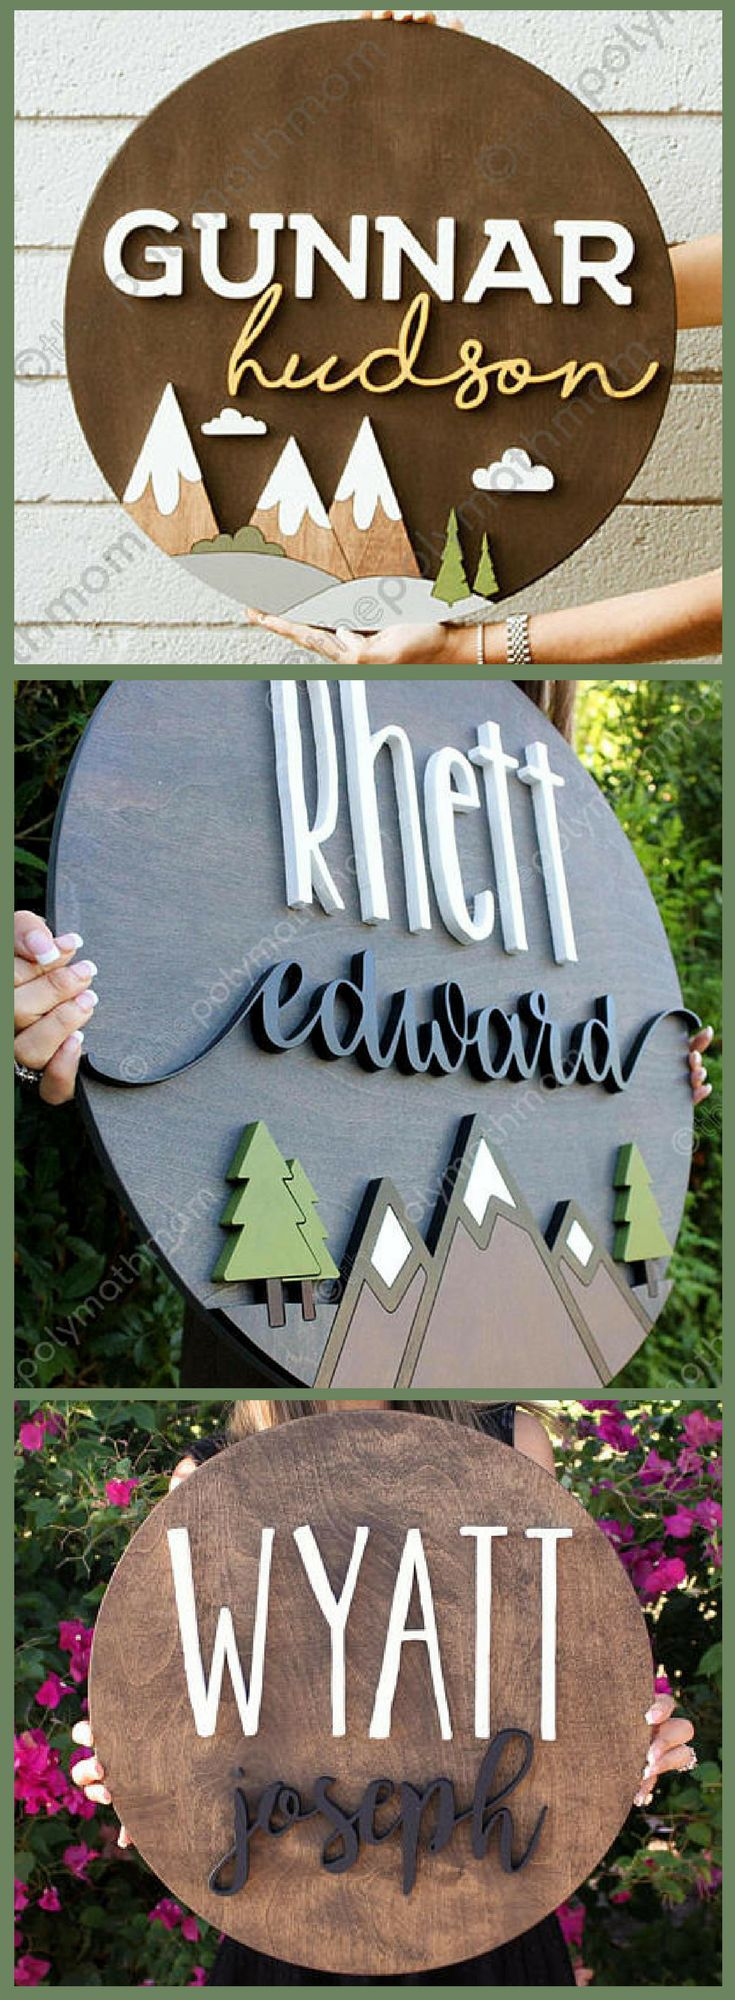 These signs are beautiful, I love the mountain landscapes! - Custom Wood Name Sign, Rustic Nursery Decor, Nursery Sign, Baby Shower Gift, Home Decor, Farmhouse Nursery Sign, Farmhouse Nursery Decor, Boy's Nursery Name Wall Art, Boy Woodland Nursery, Boy's Bedroom Sign #ad